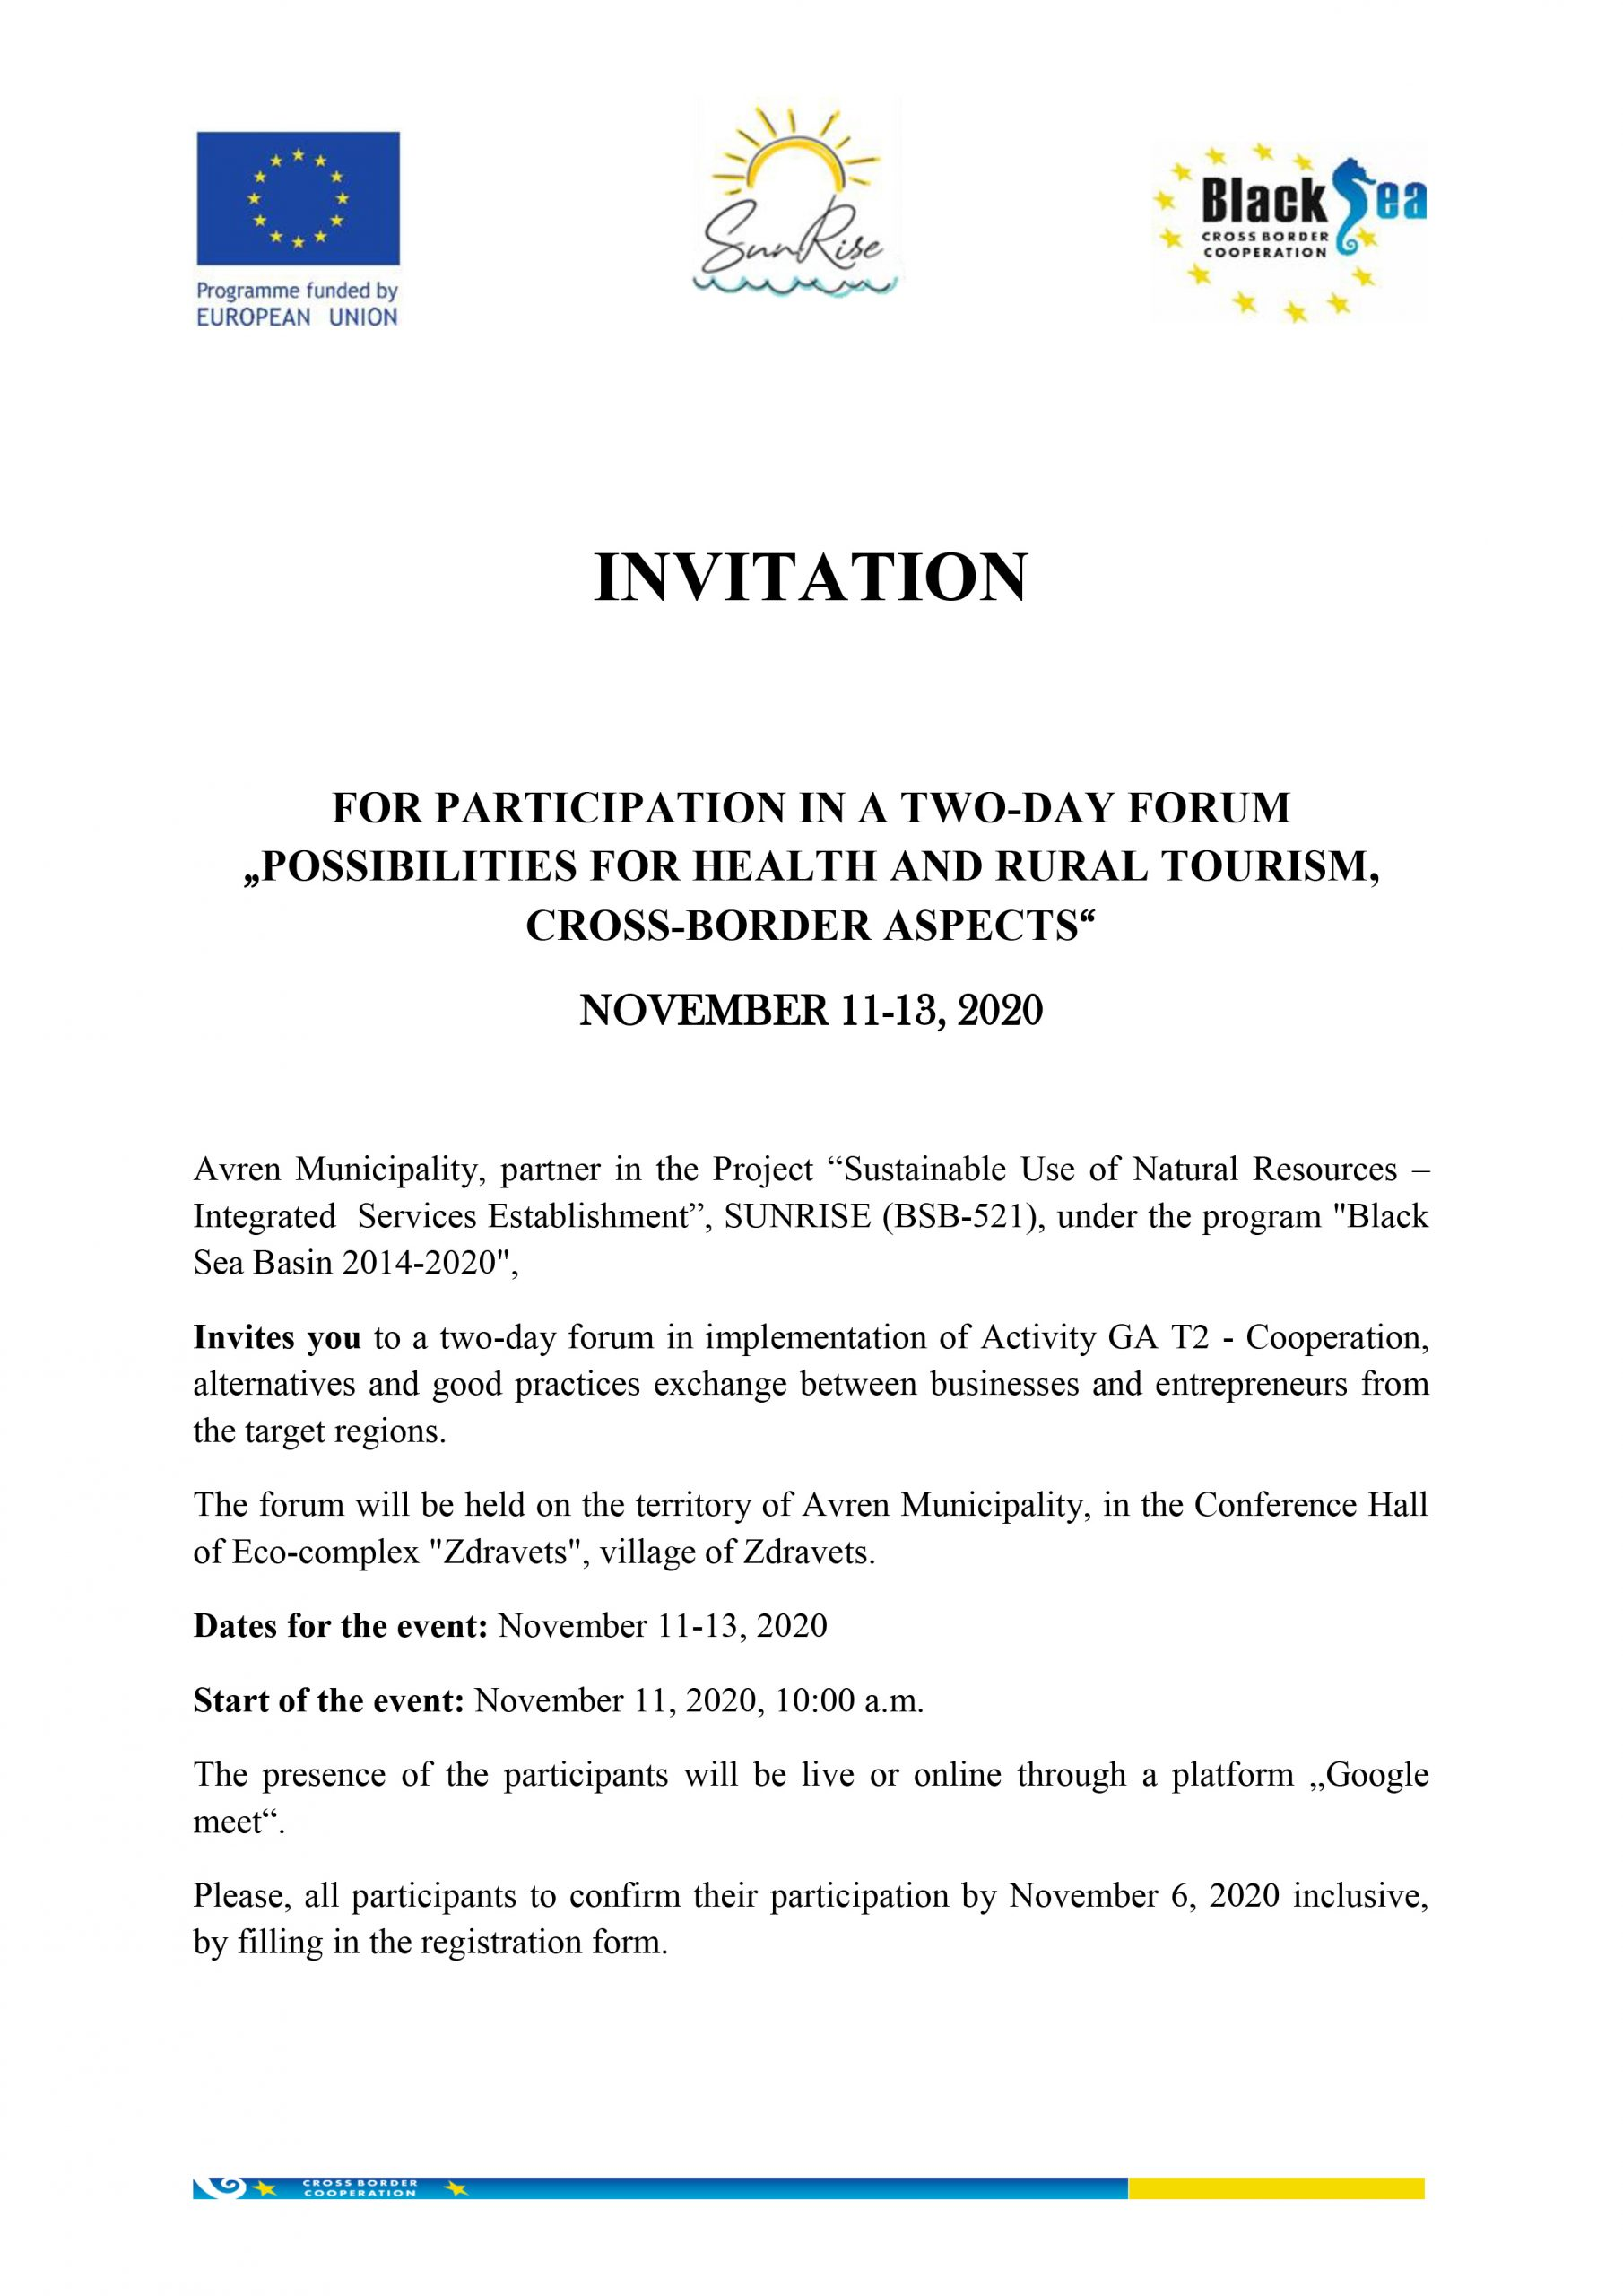 Invitation to participate in a two-day forum